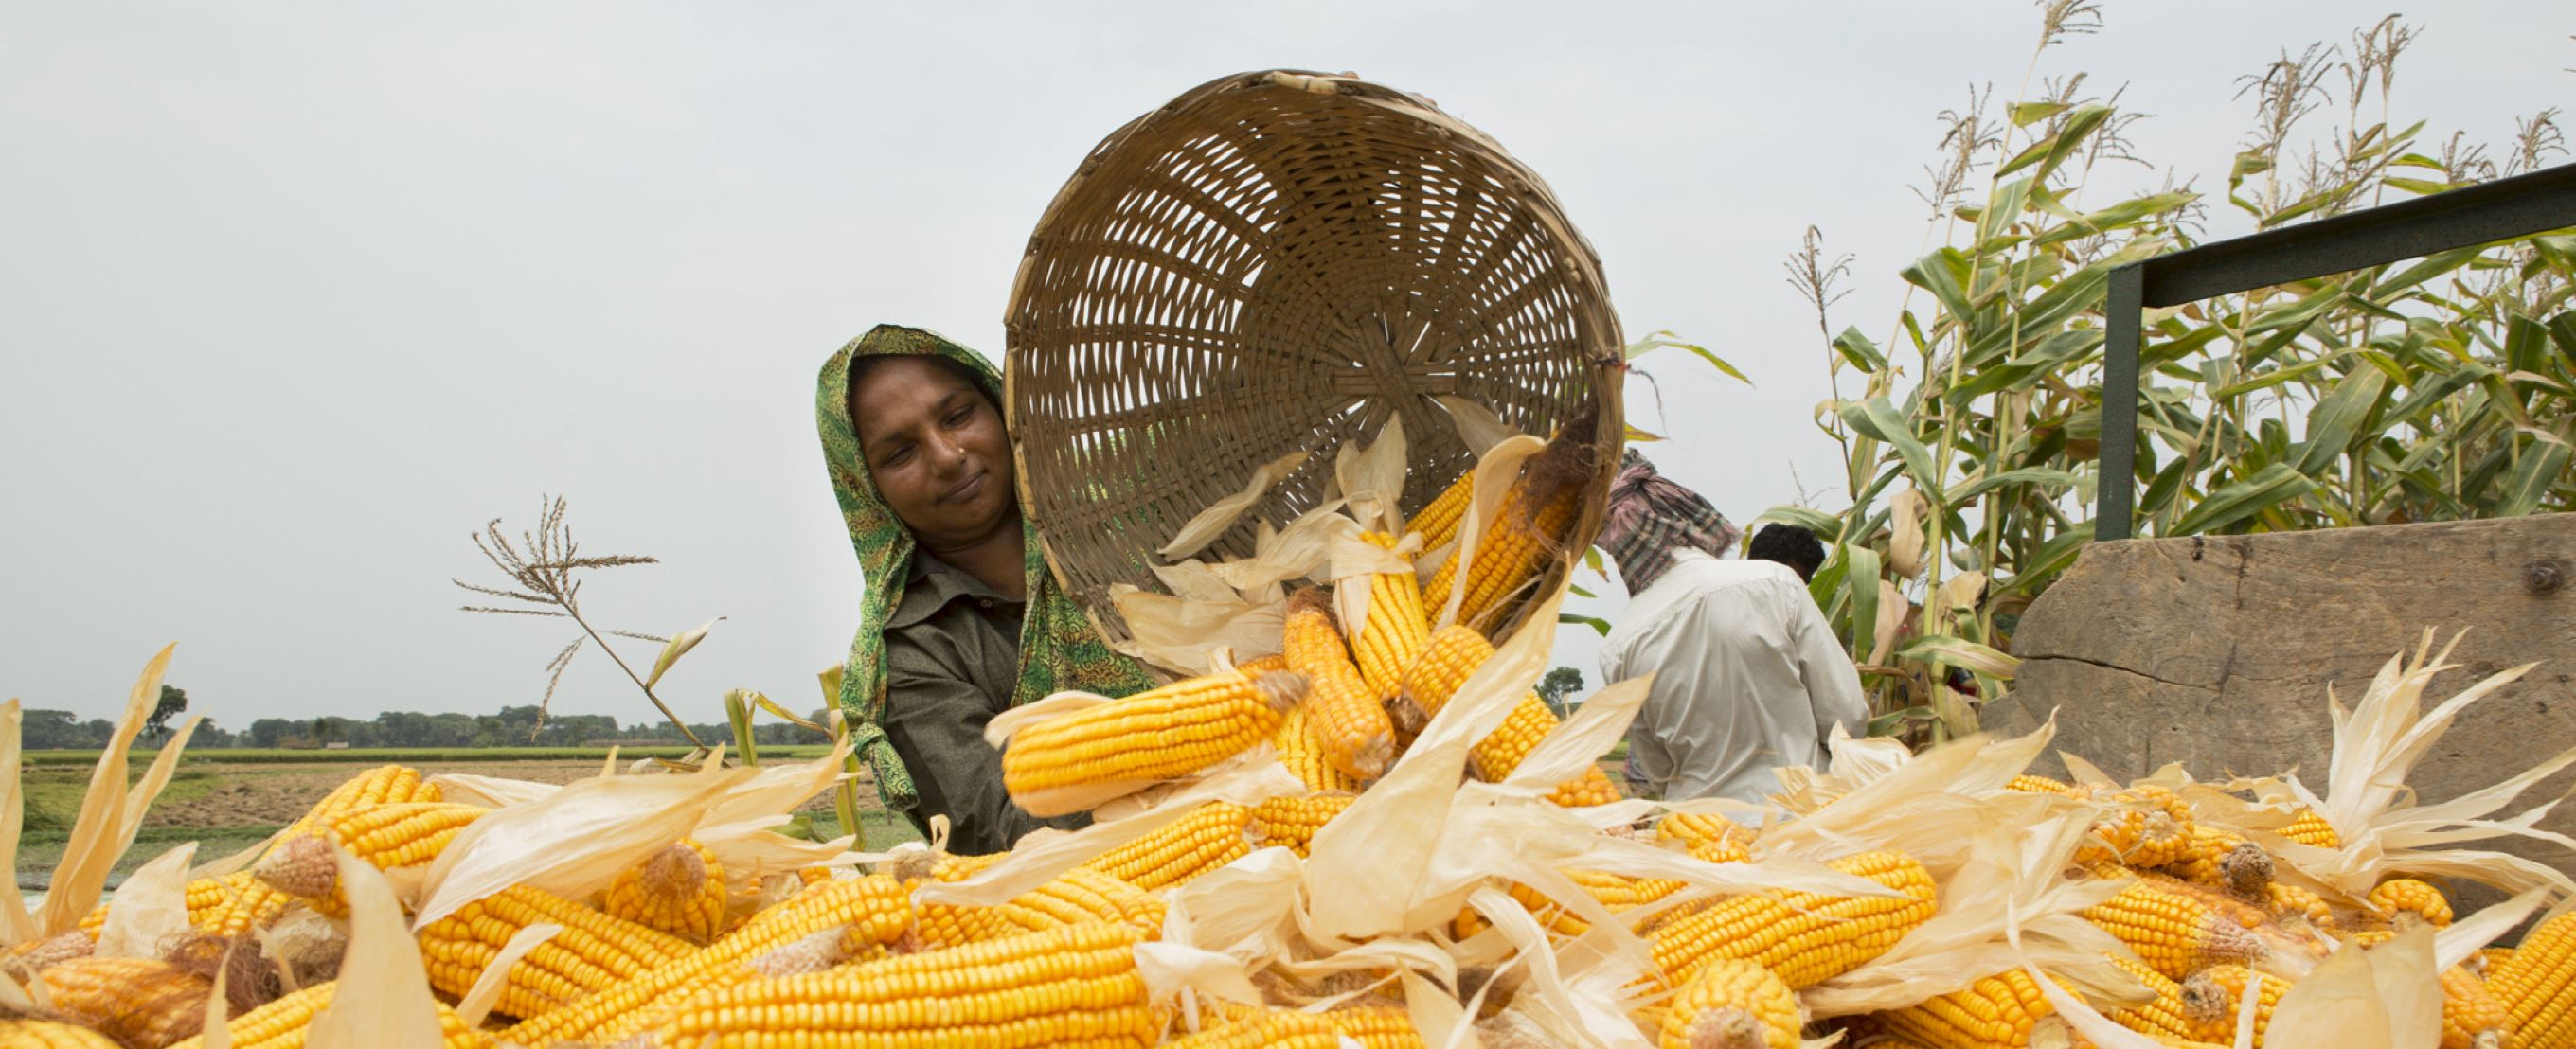 Lady pouring corn on the cobs